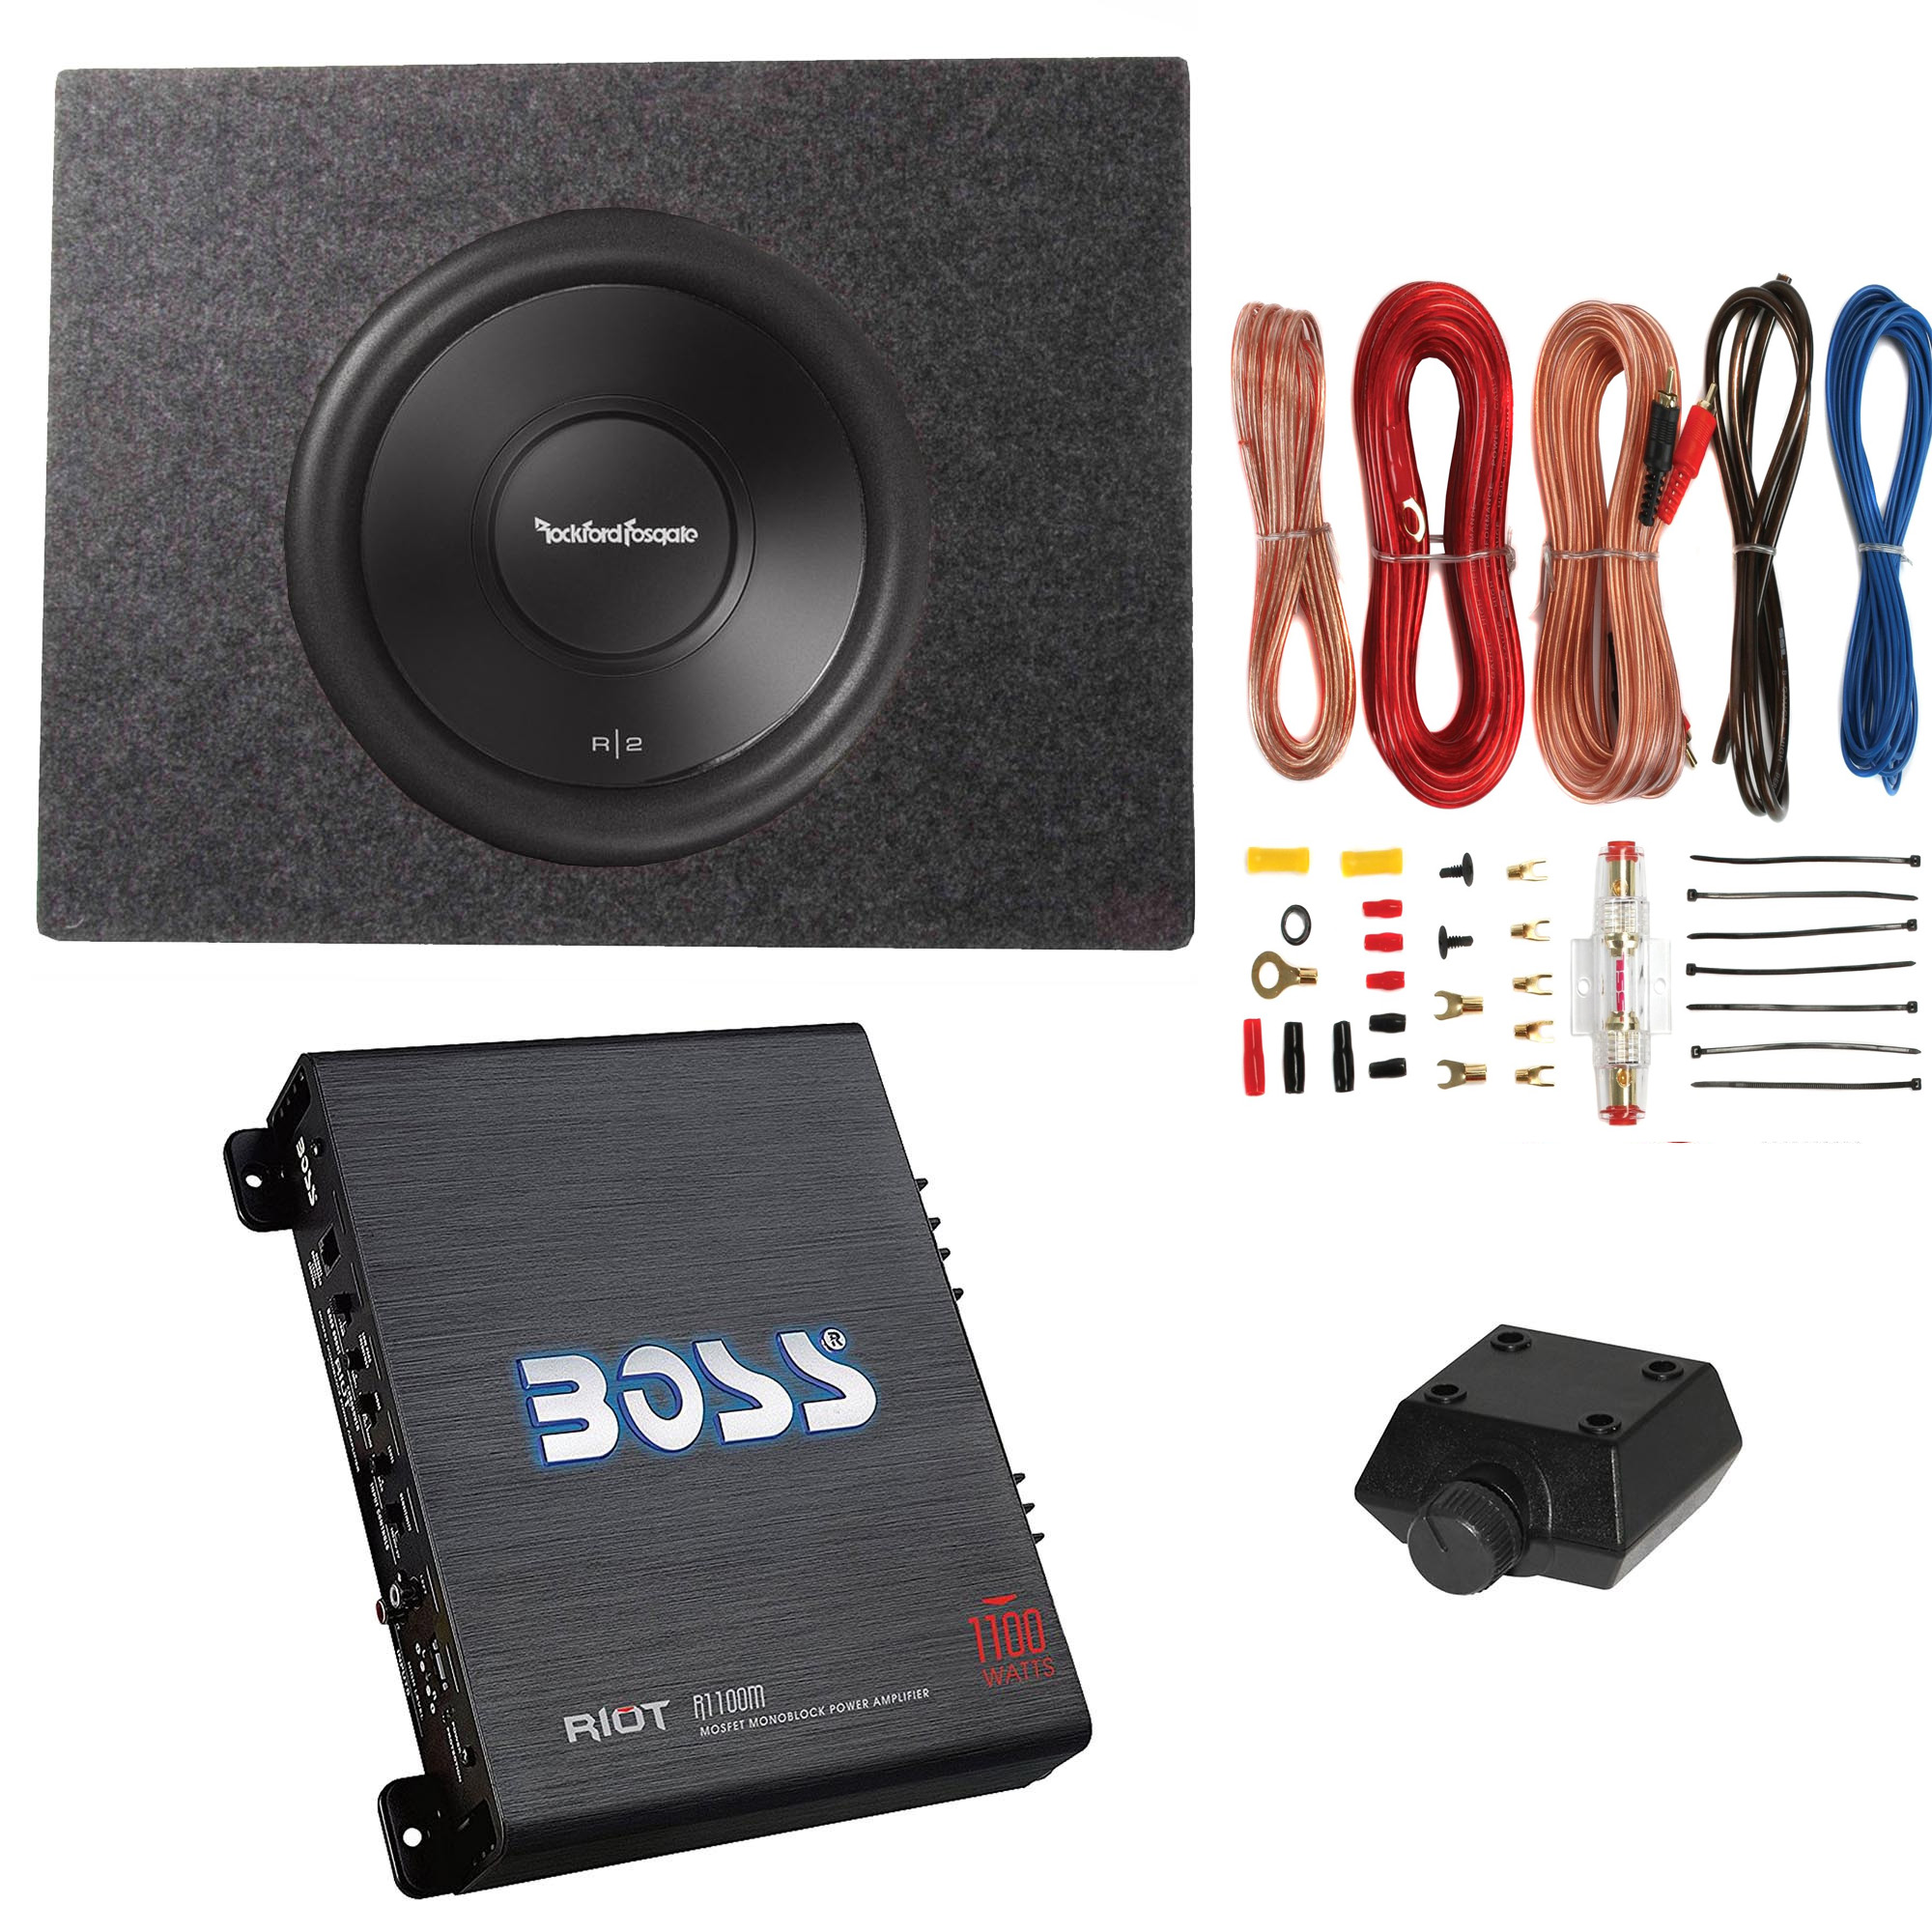 Rockford Fosgate 500w Subwoofer Q Power Truck Enclosure Boss Wiring Diagram For 12 4 Ohm 1100w Amplifier